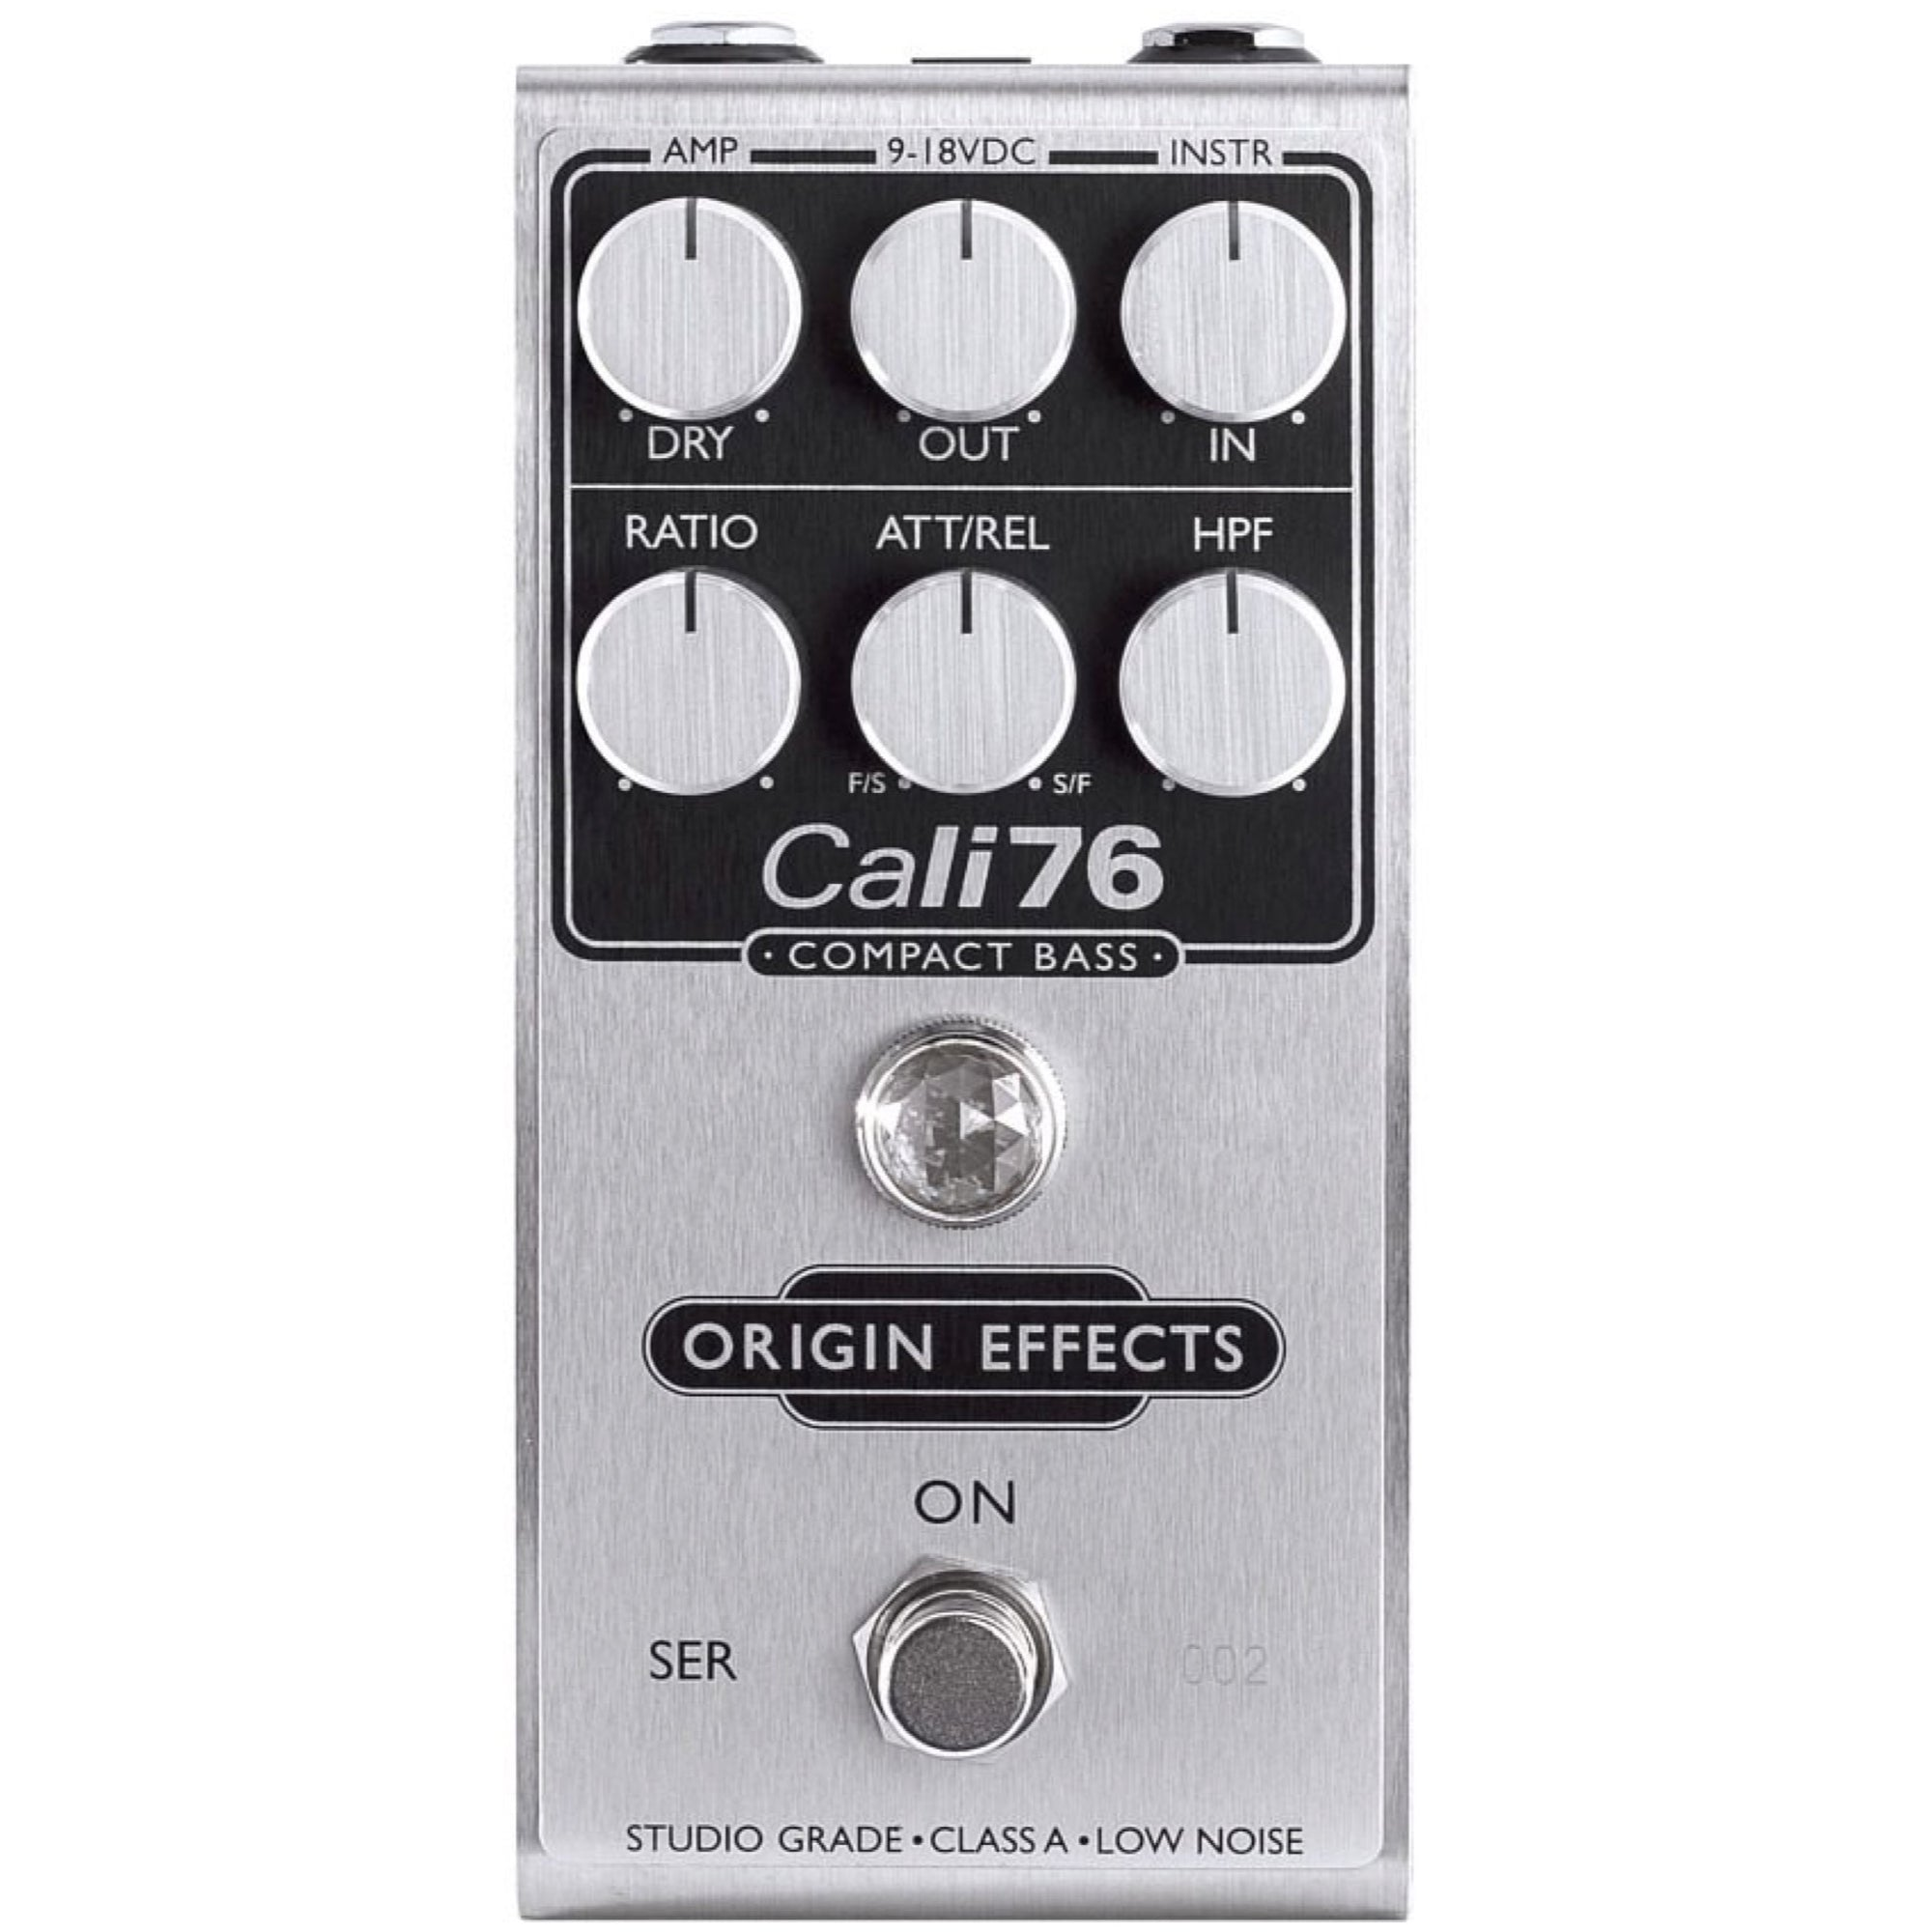 Origin Effects Cali76 Compact Bass Compressor Pedal